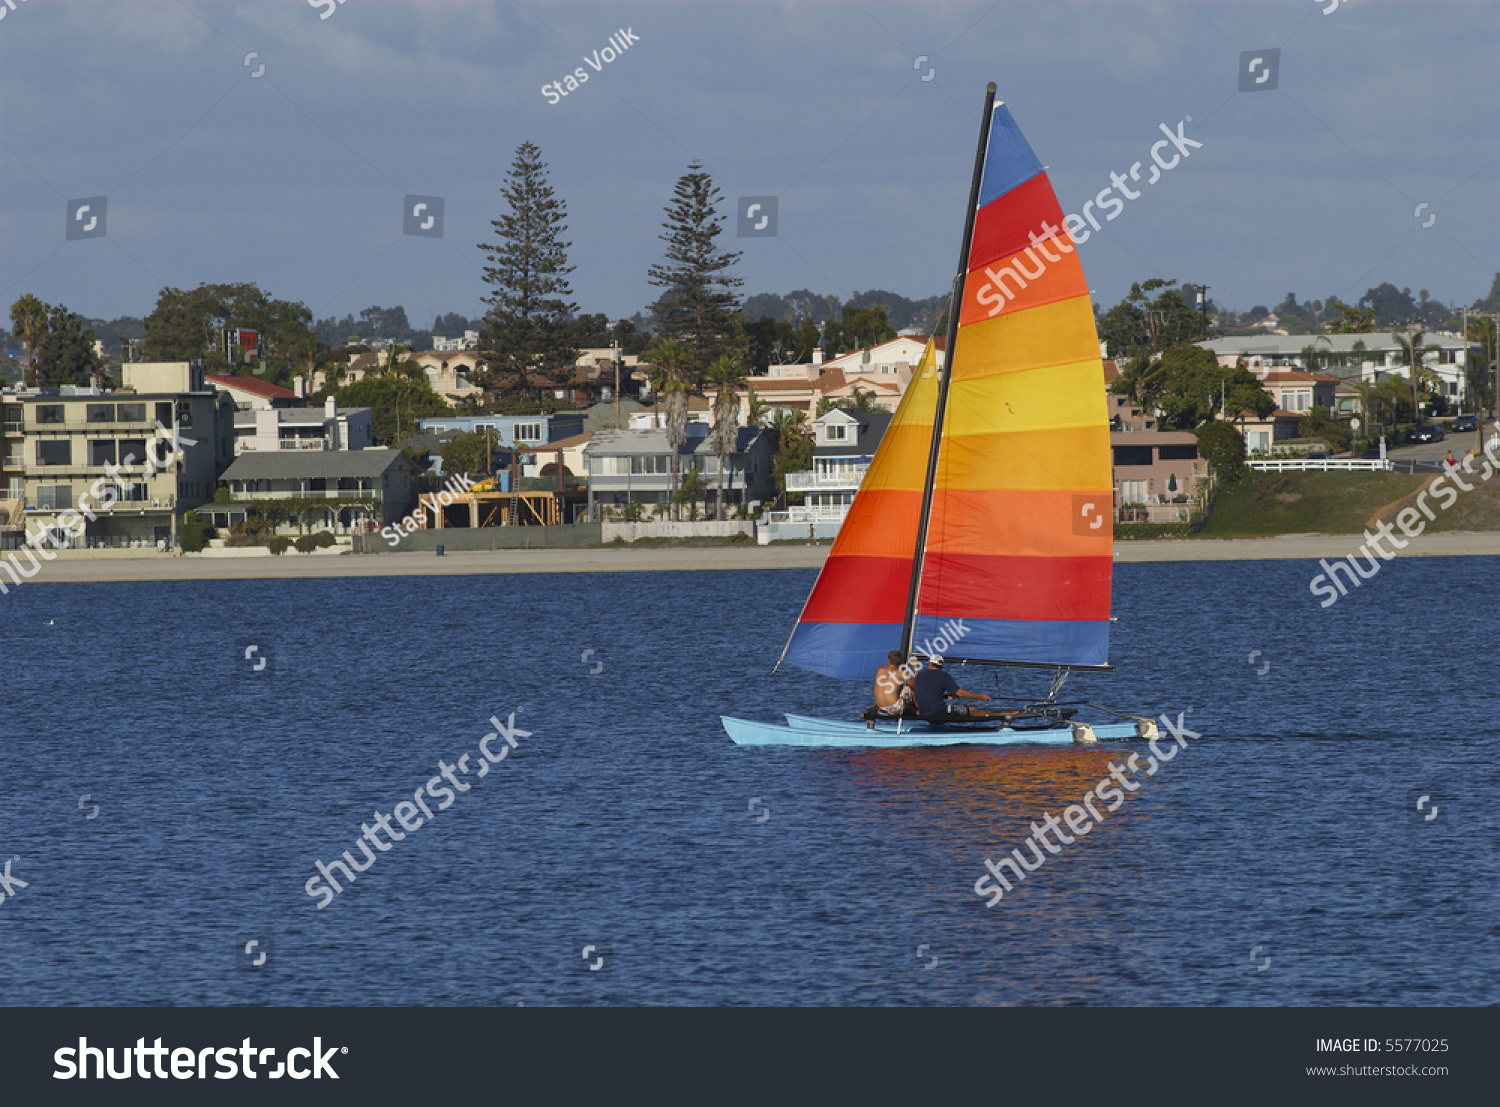 Two Men Are Sailing A Yacht With Colorful Sail In Mission Bay. San Diego. California. Stock Photo 5577025 : Shutterstock